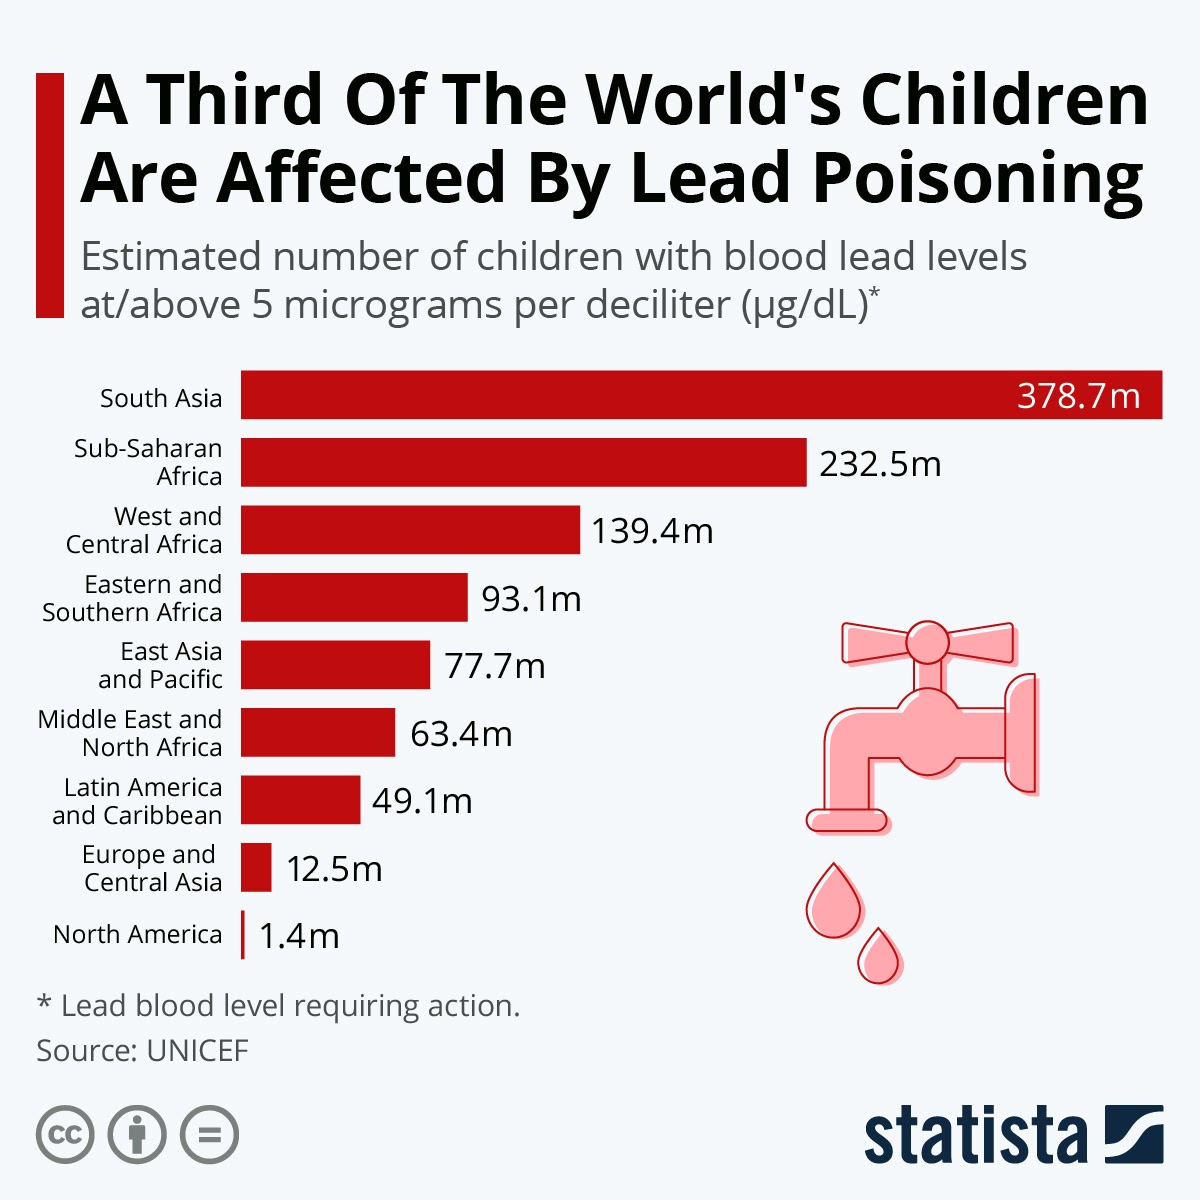 A Third Of The World's Children Are Affected By Lead Poisoning #Infographic